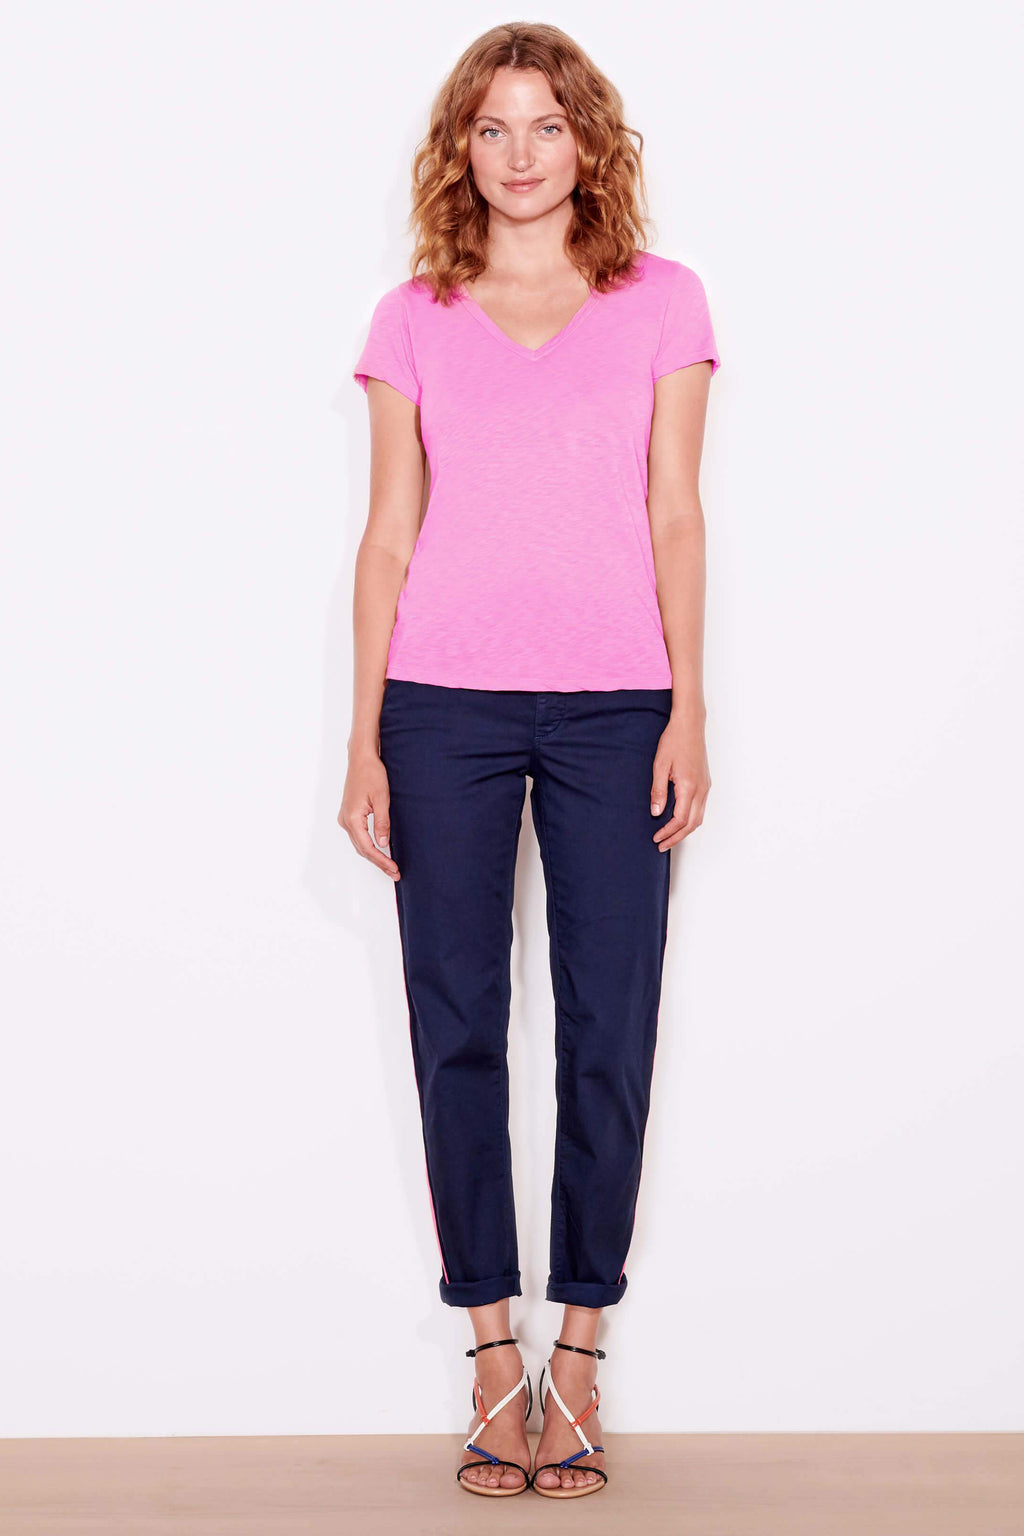 sundry v-neck tee neon pink